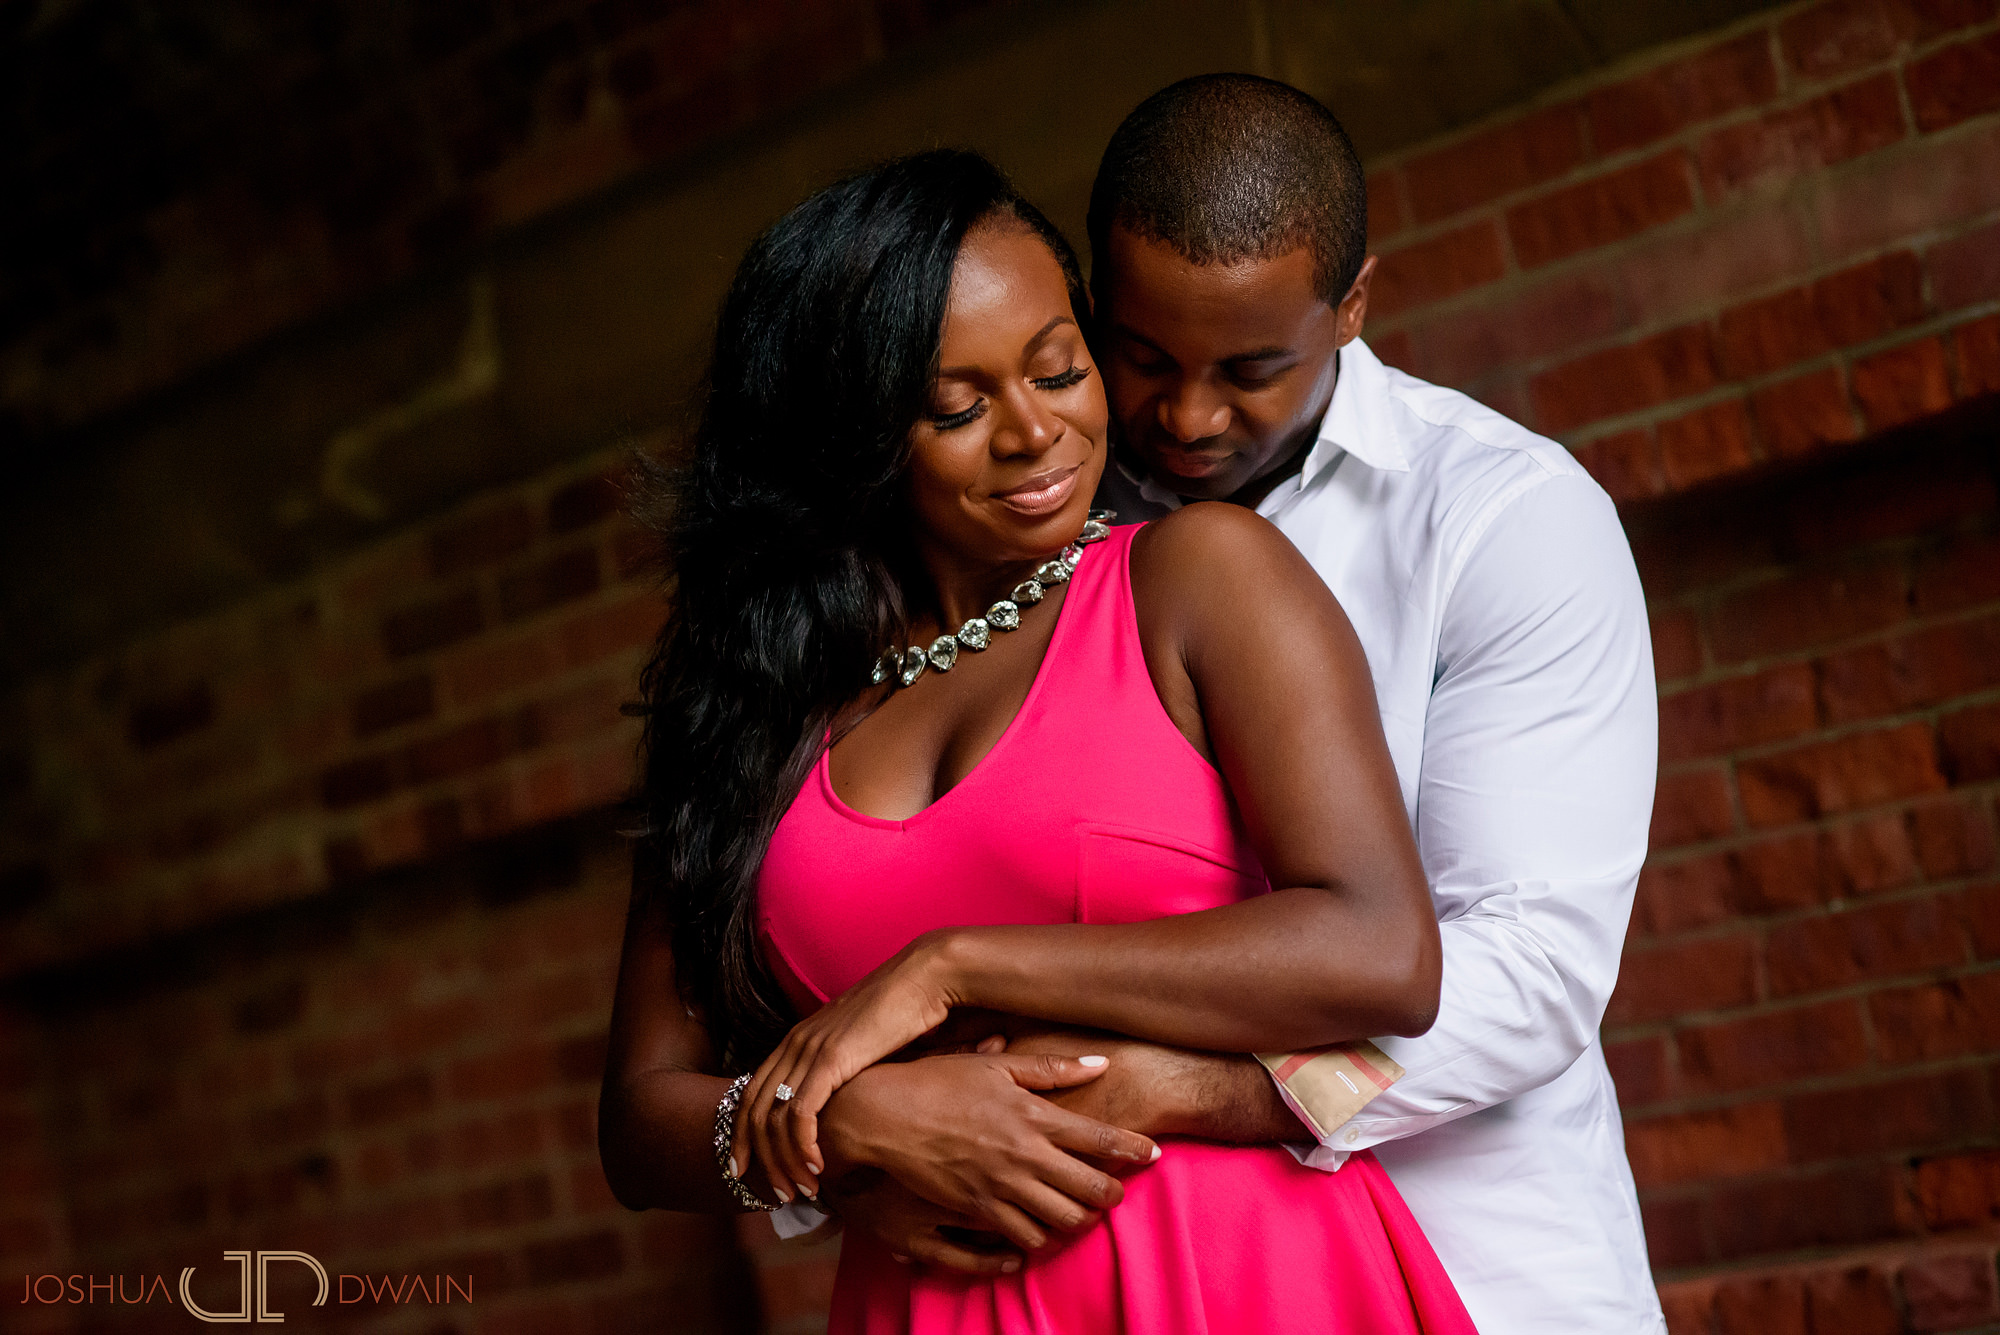 sandra-otwan-008-central-park-lincoln-center-new-yorkpre-wedding-photos-joshua-dwain